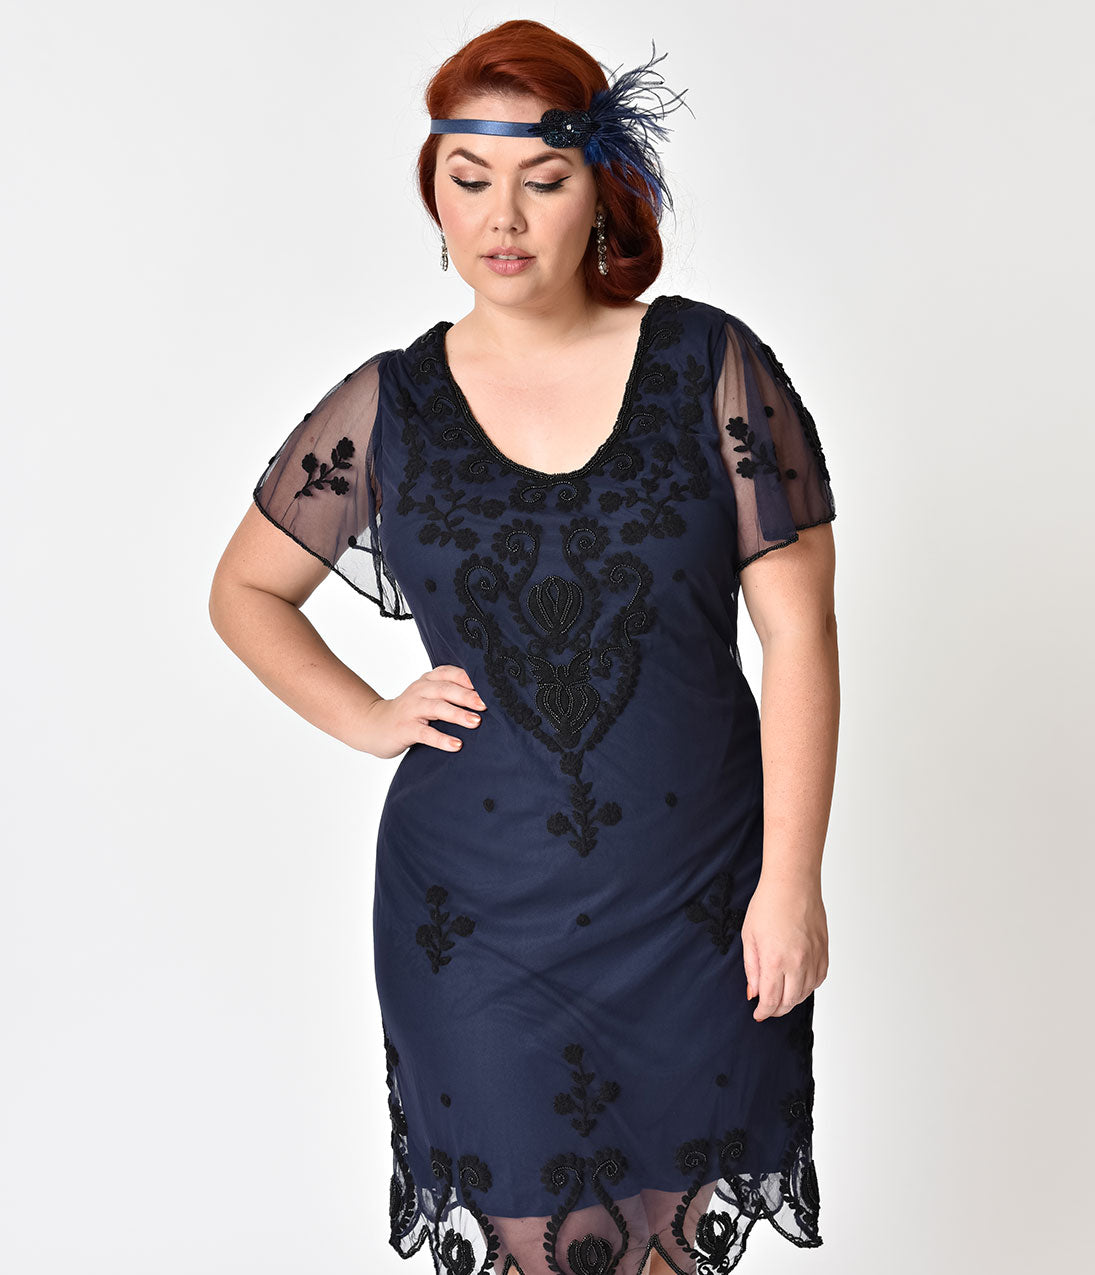 Roaring 20s Costumes- Flapper Costumes, Gangster Costumes Plus Size Navy Blue  Black Embroidery Lillian Flapper Dress $78.00 AT vintagedancer.com